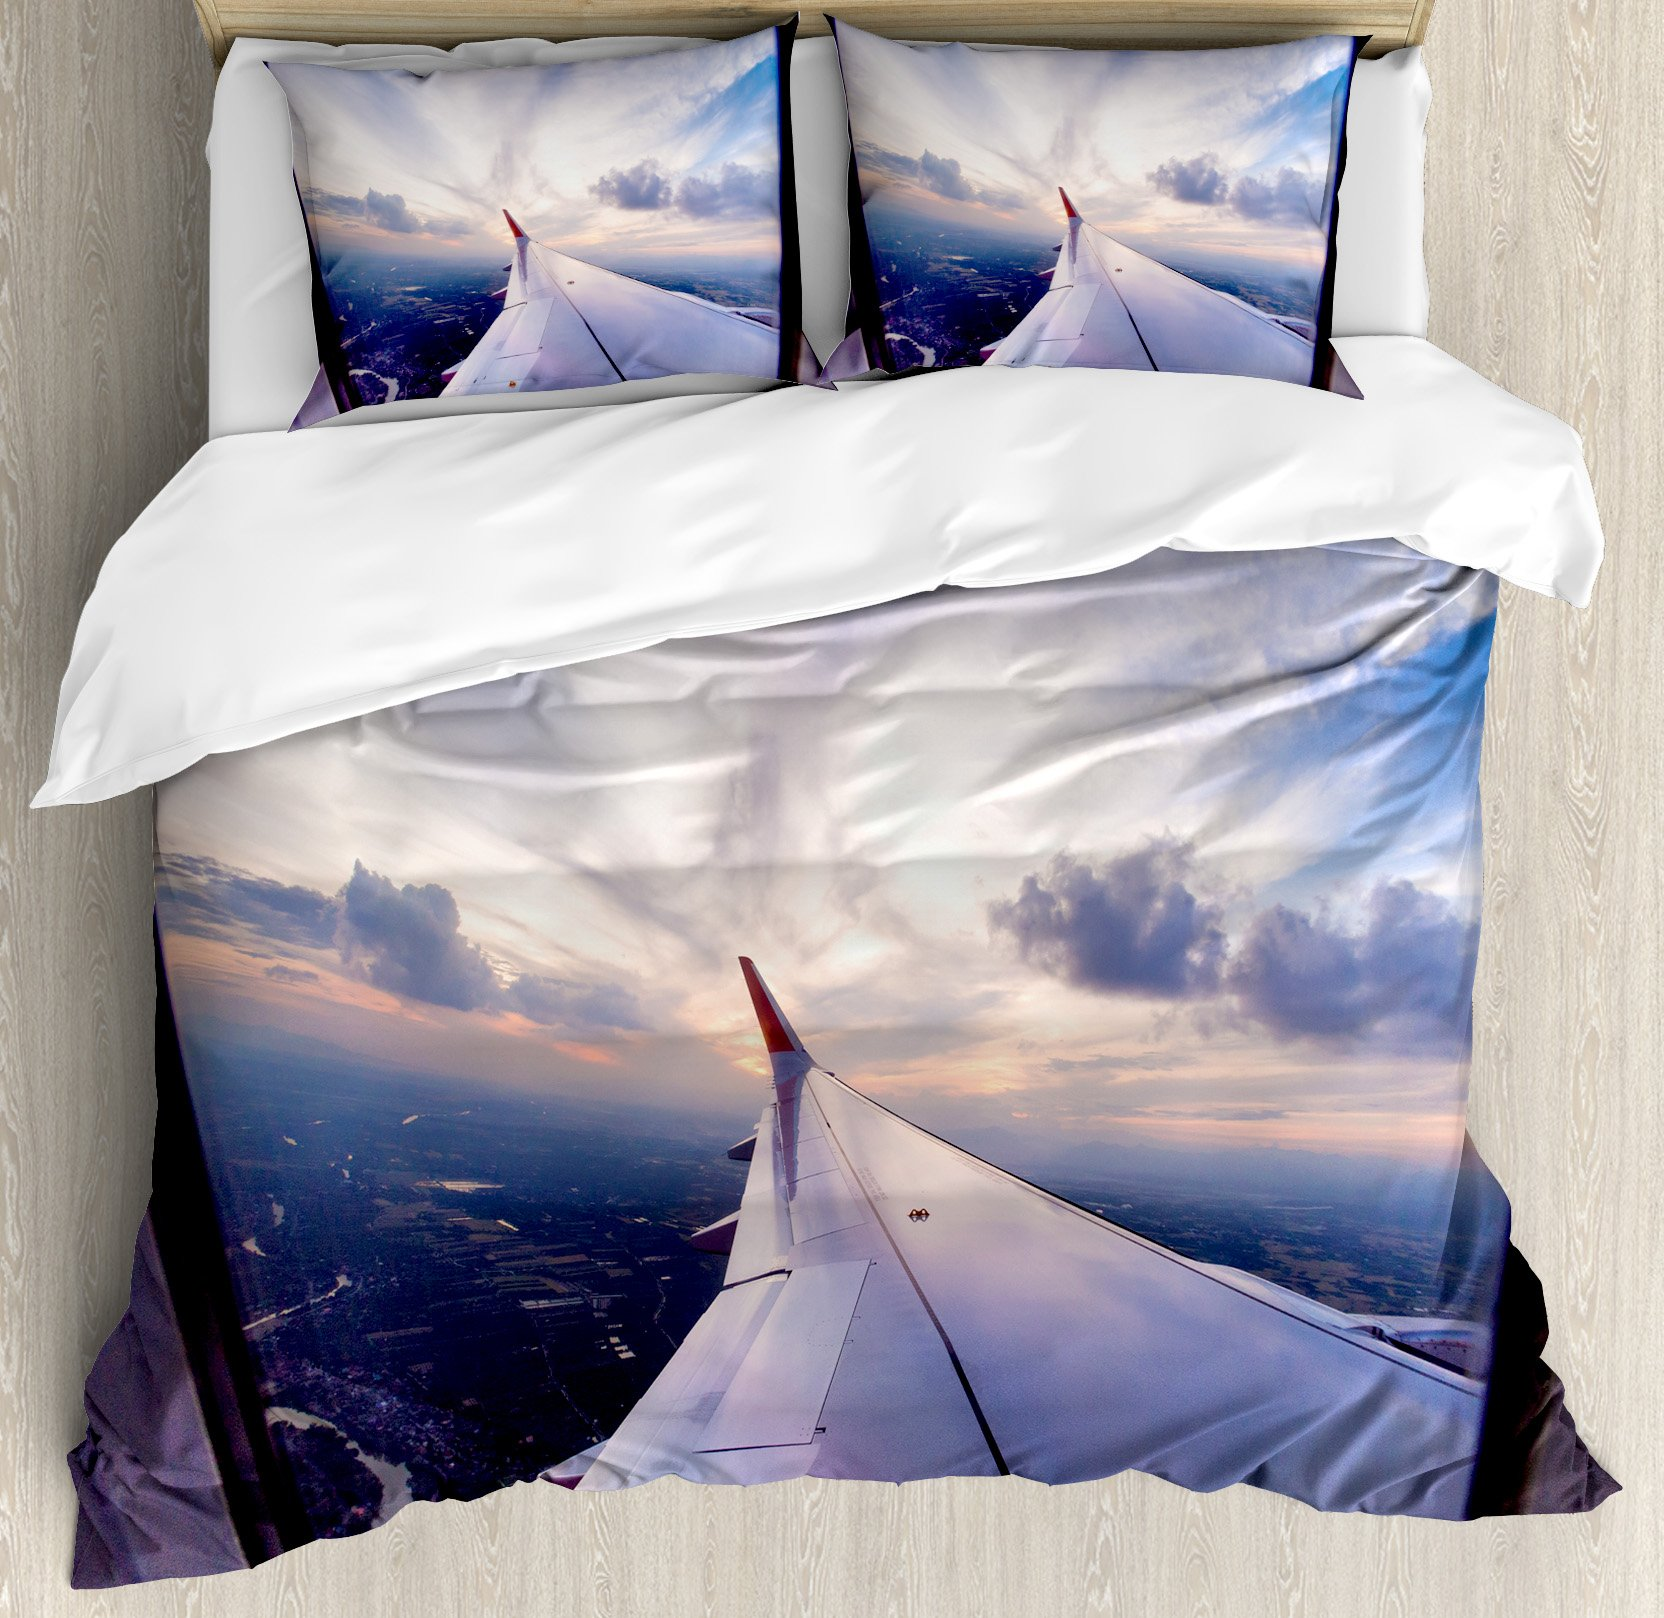 Airplane Decor King Size Duvet Cover Set by Ambesonne, Airplane Travel Time is Sunset Business Distant Evening Float Holiday Horizon Journey Window, Decorative 3 Piece Bedding Set with 2 Pillow Shams